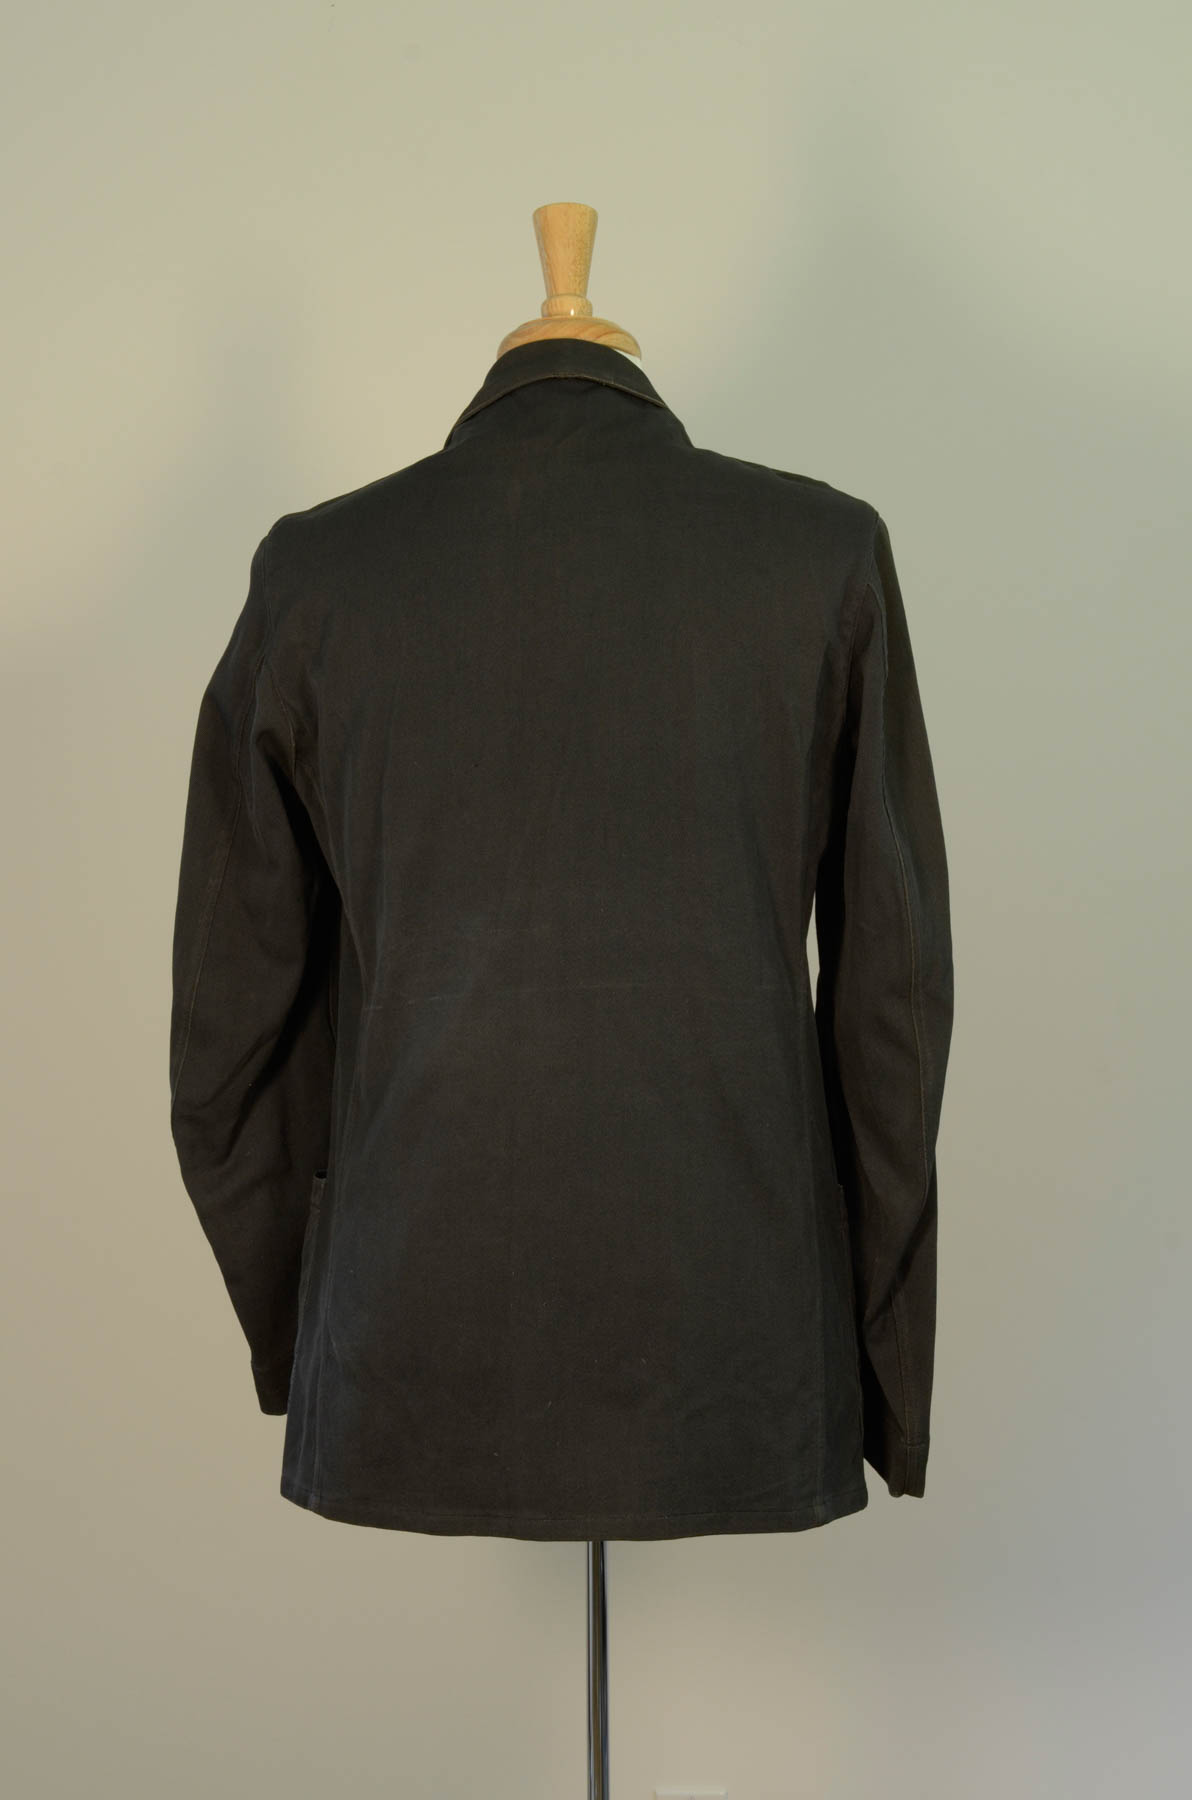 Reunion Jacket 1926 Rear